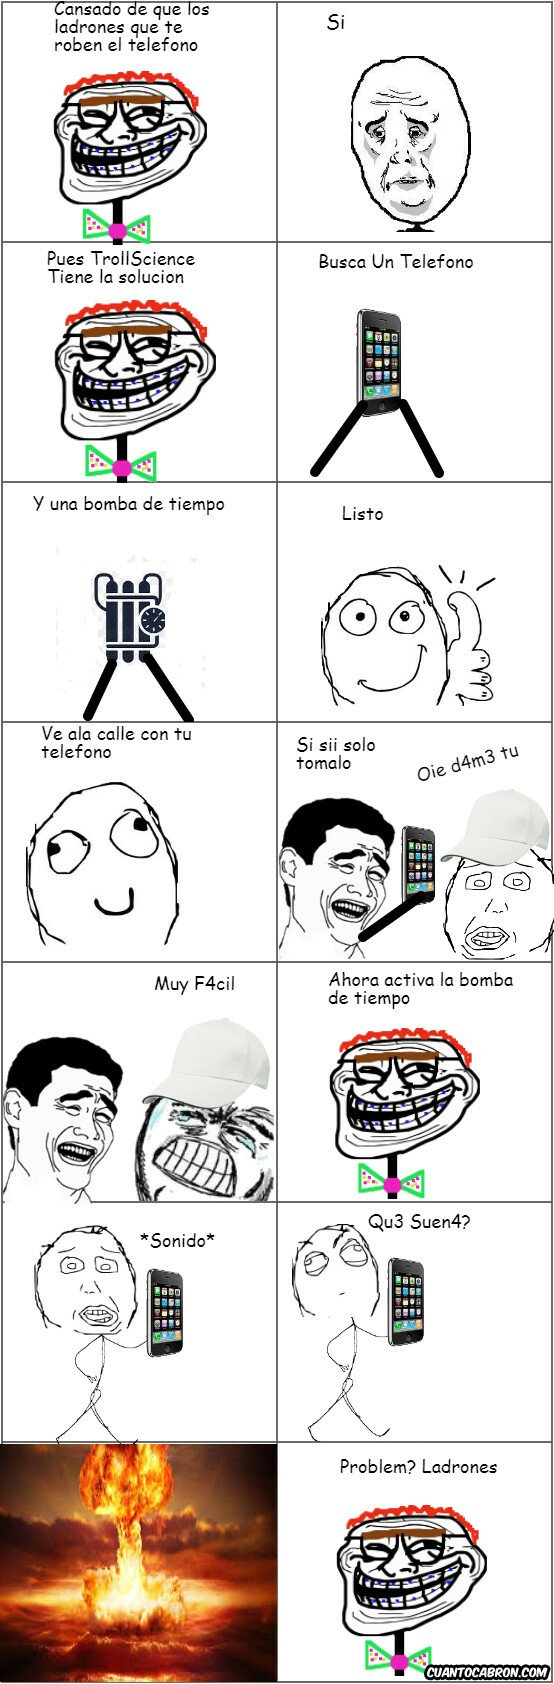 Trollface - Problem Ladrones?